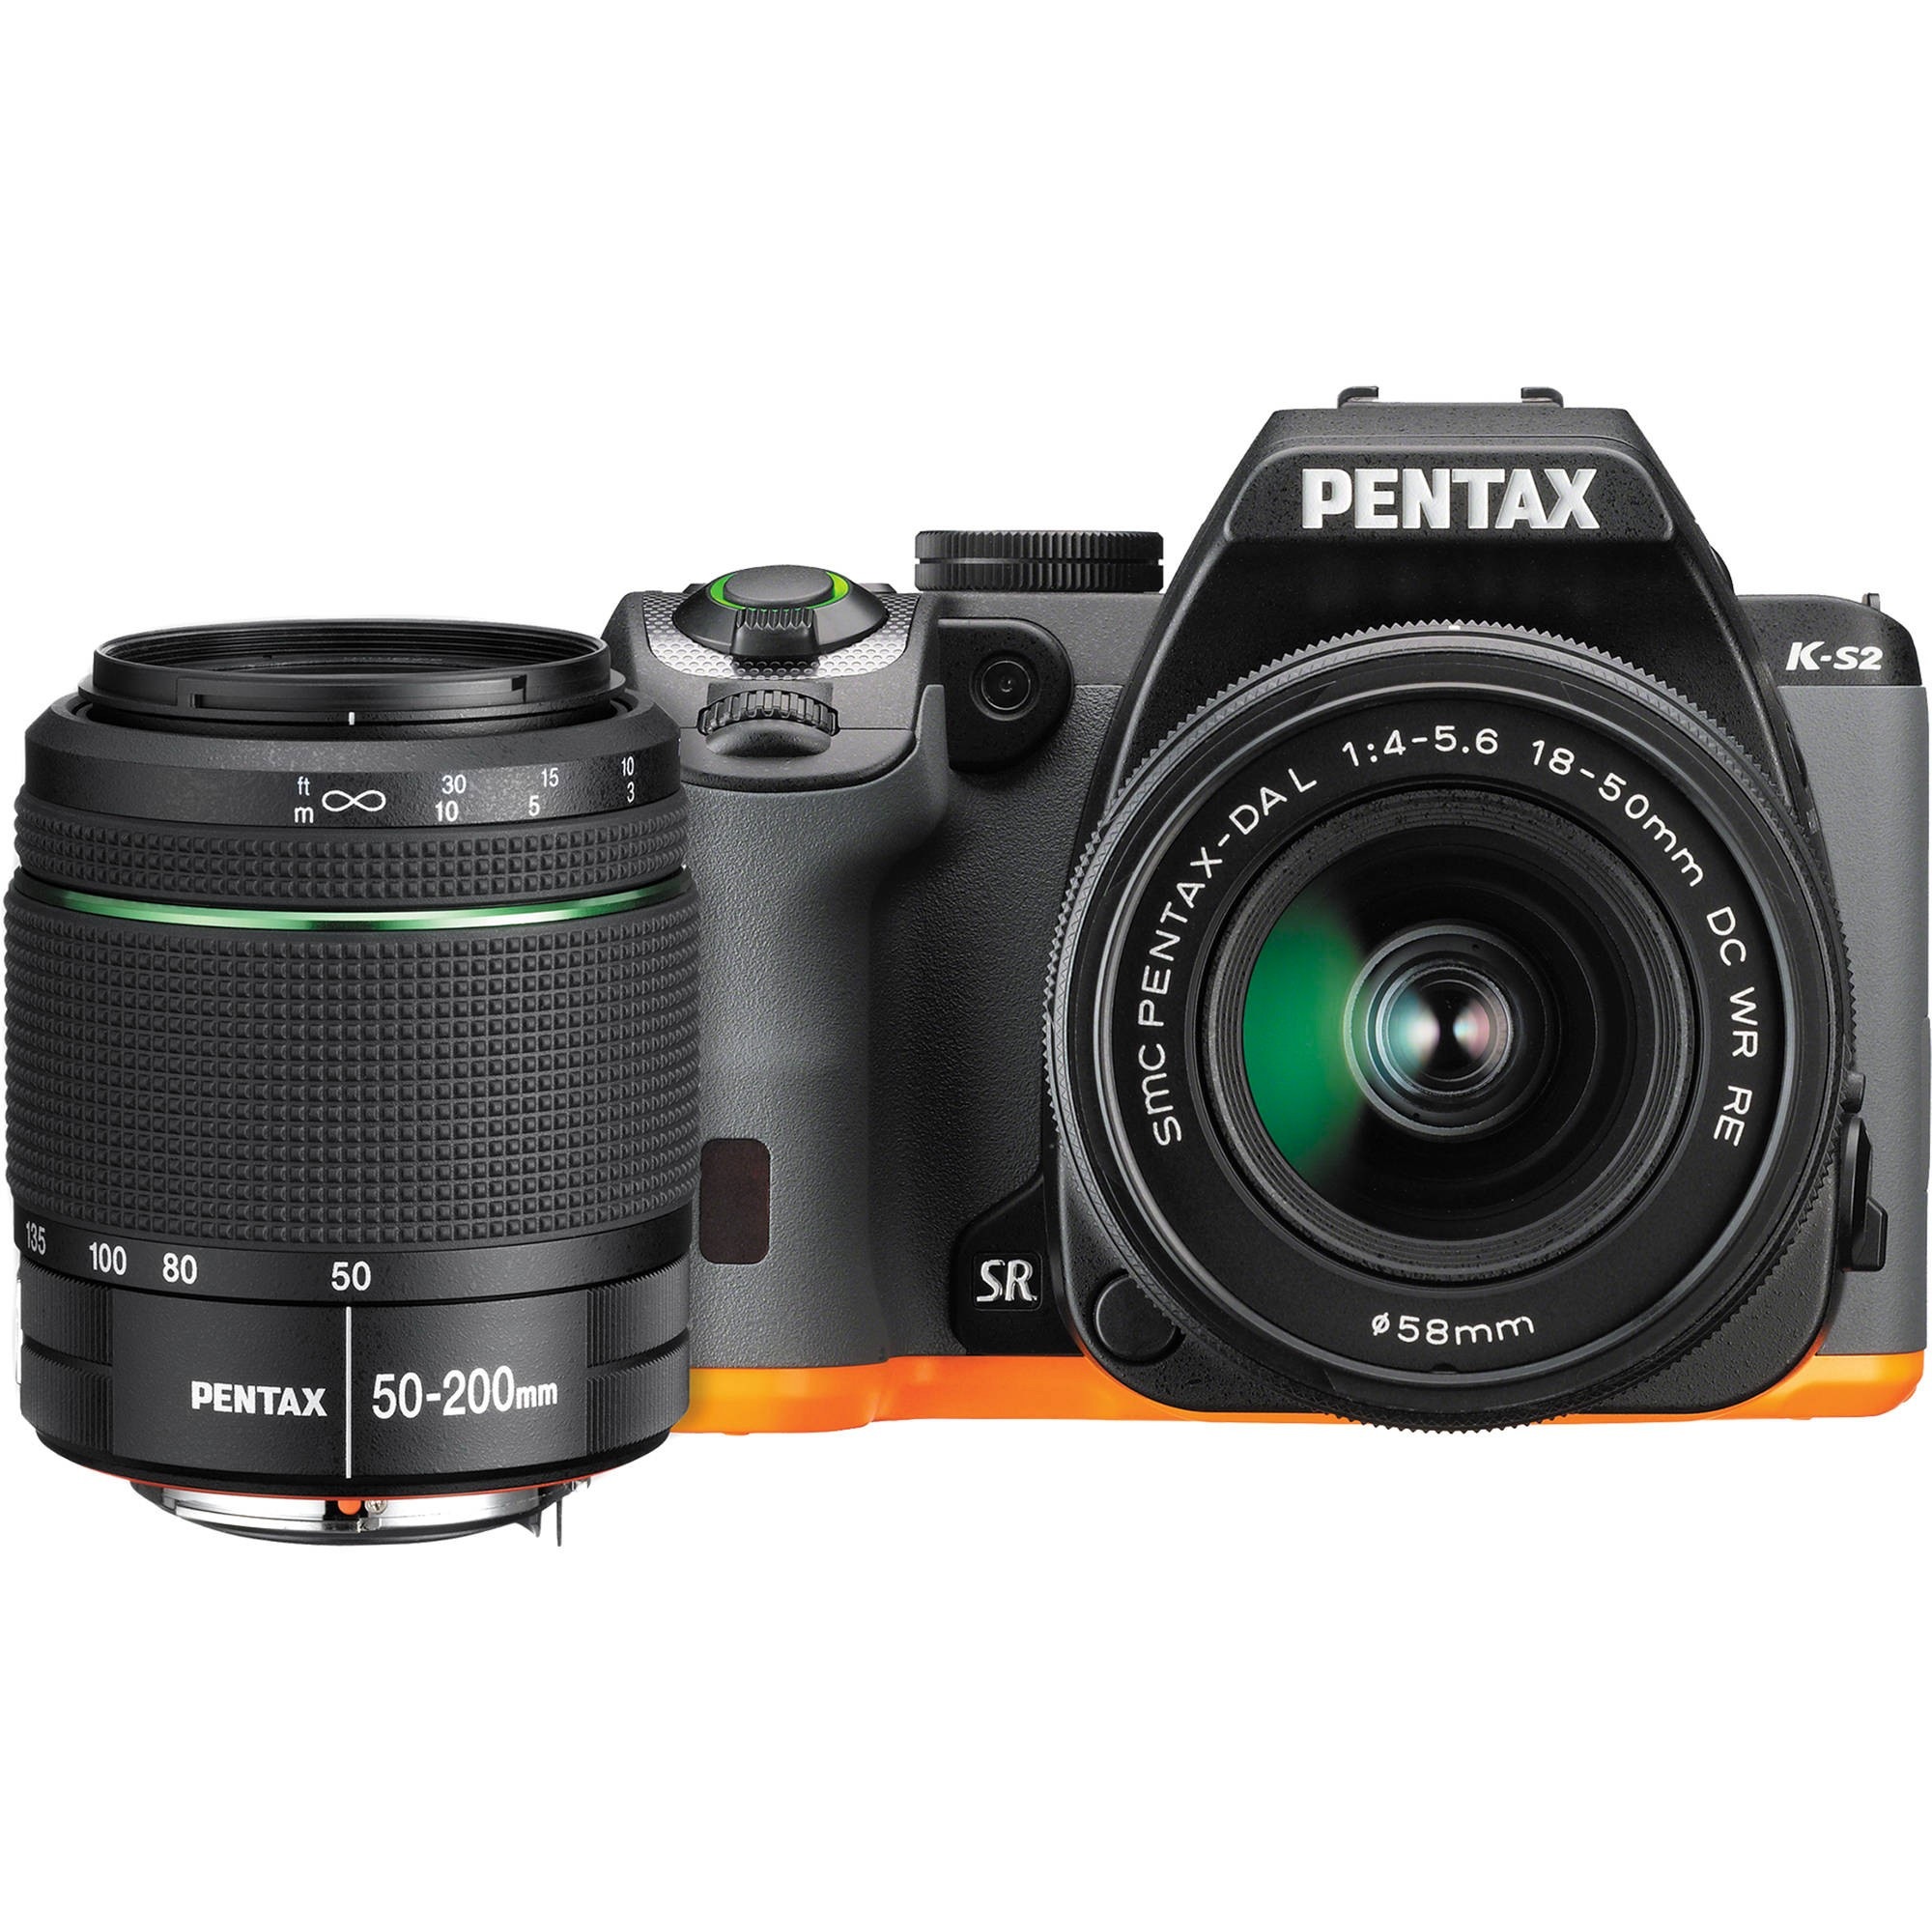 PENTAX 13218 20.0 Megapixel K-S2 Digital SLR Camera (WZoom; Black & Orange)